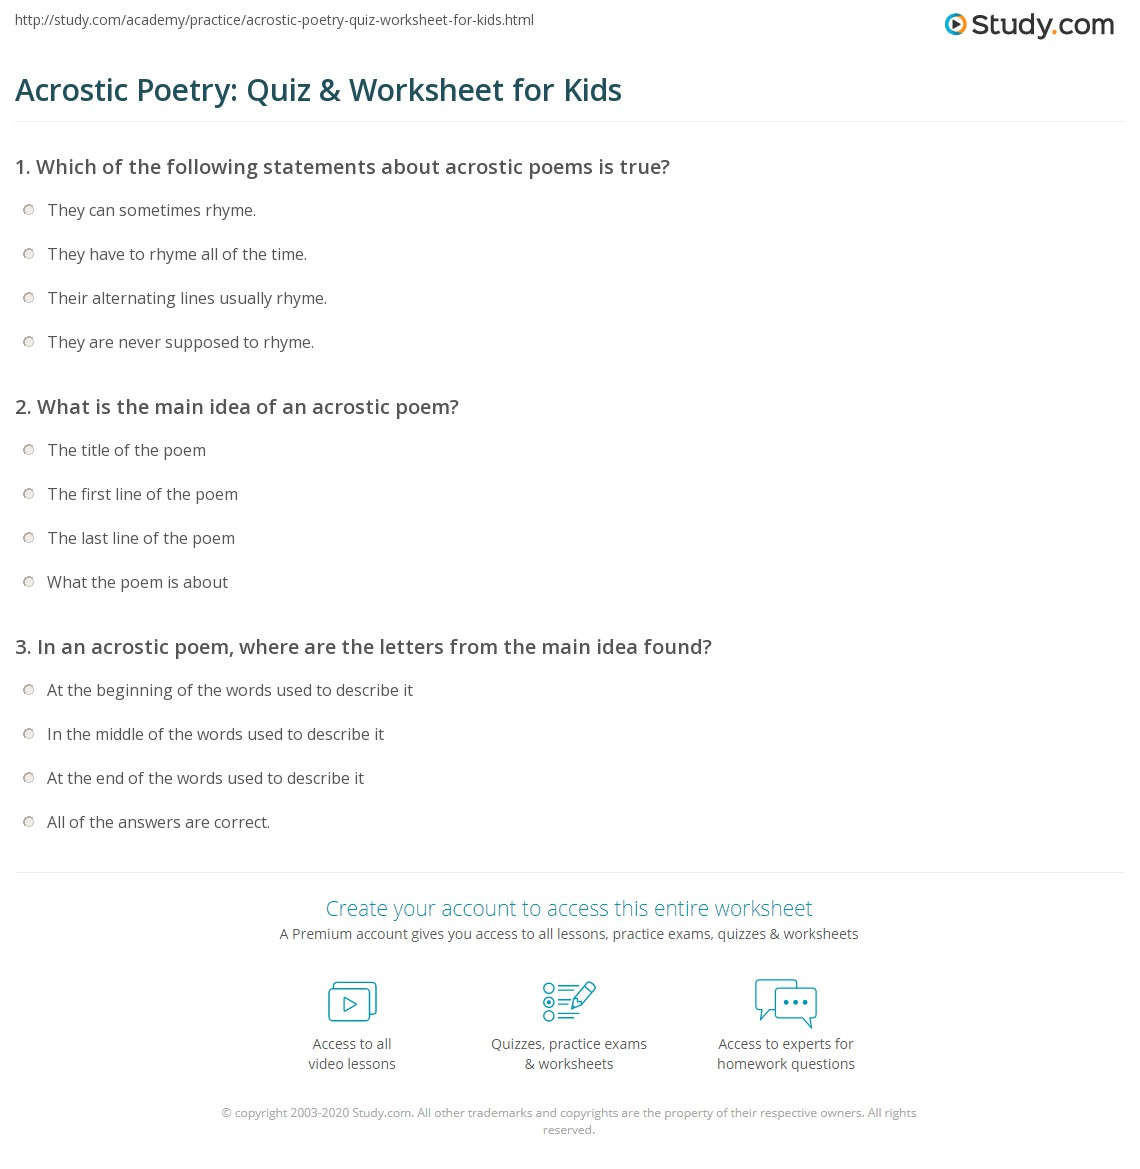 Acrostic Poetry: Quiz & Worksheet for Kids | Study.com